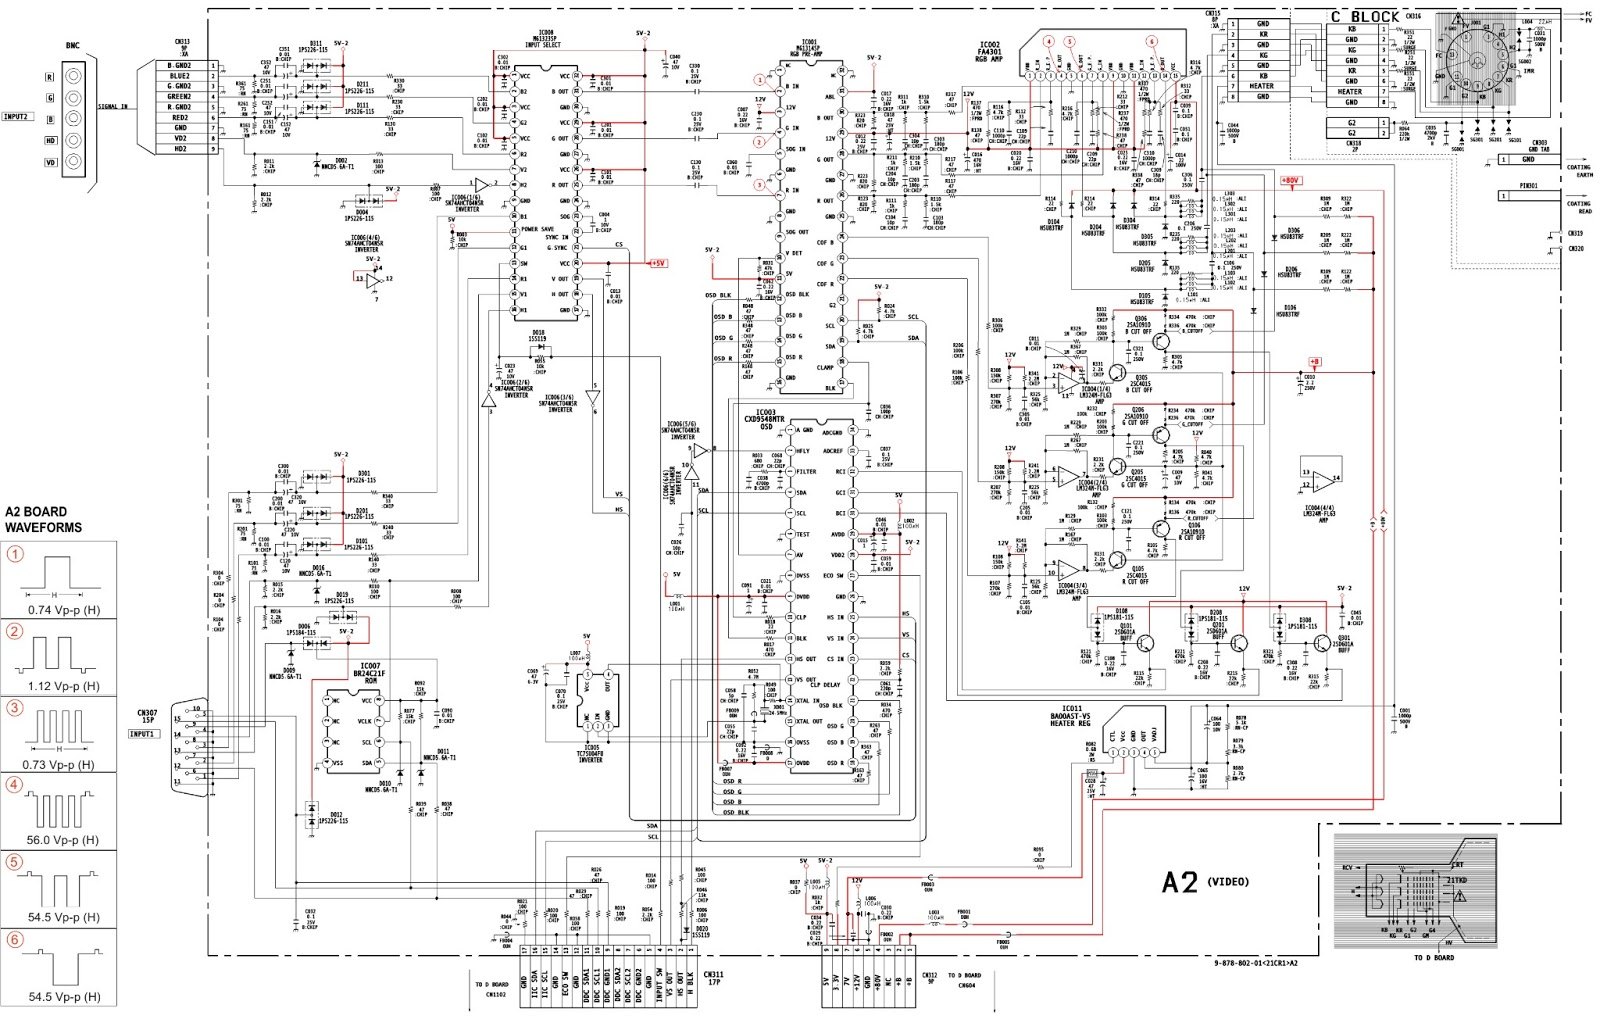 Ps4 Controller Schematic Pictures To Pin